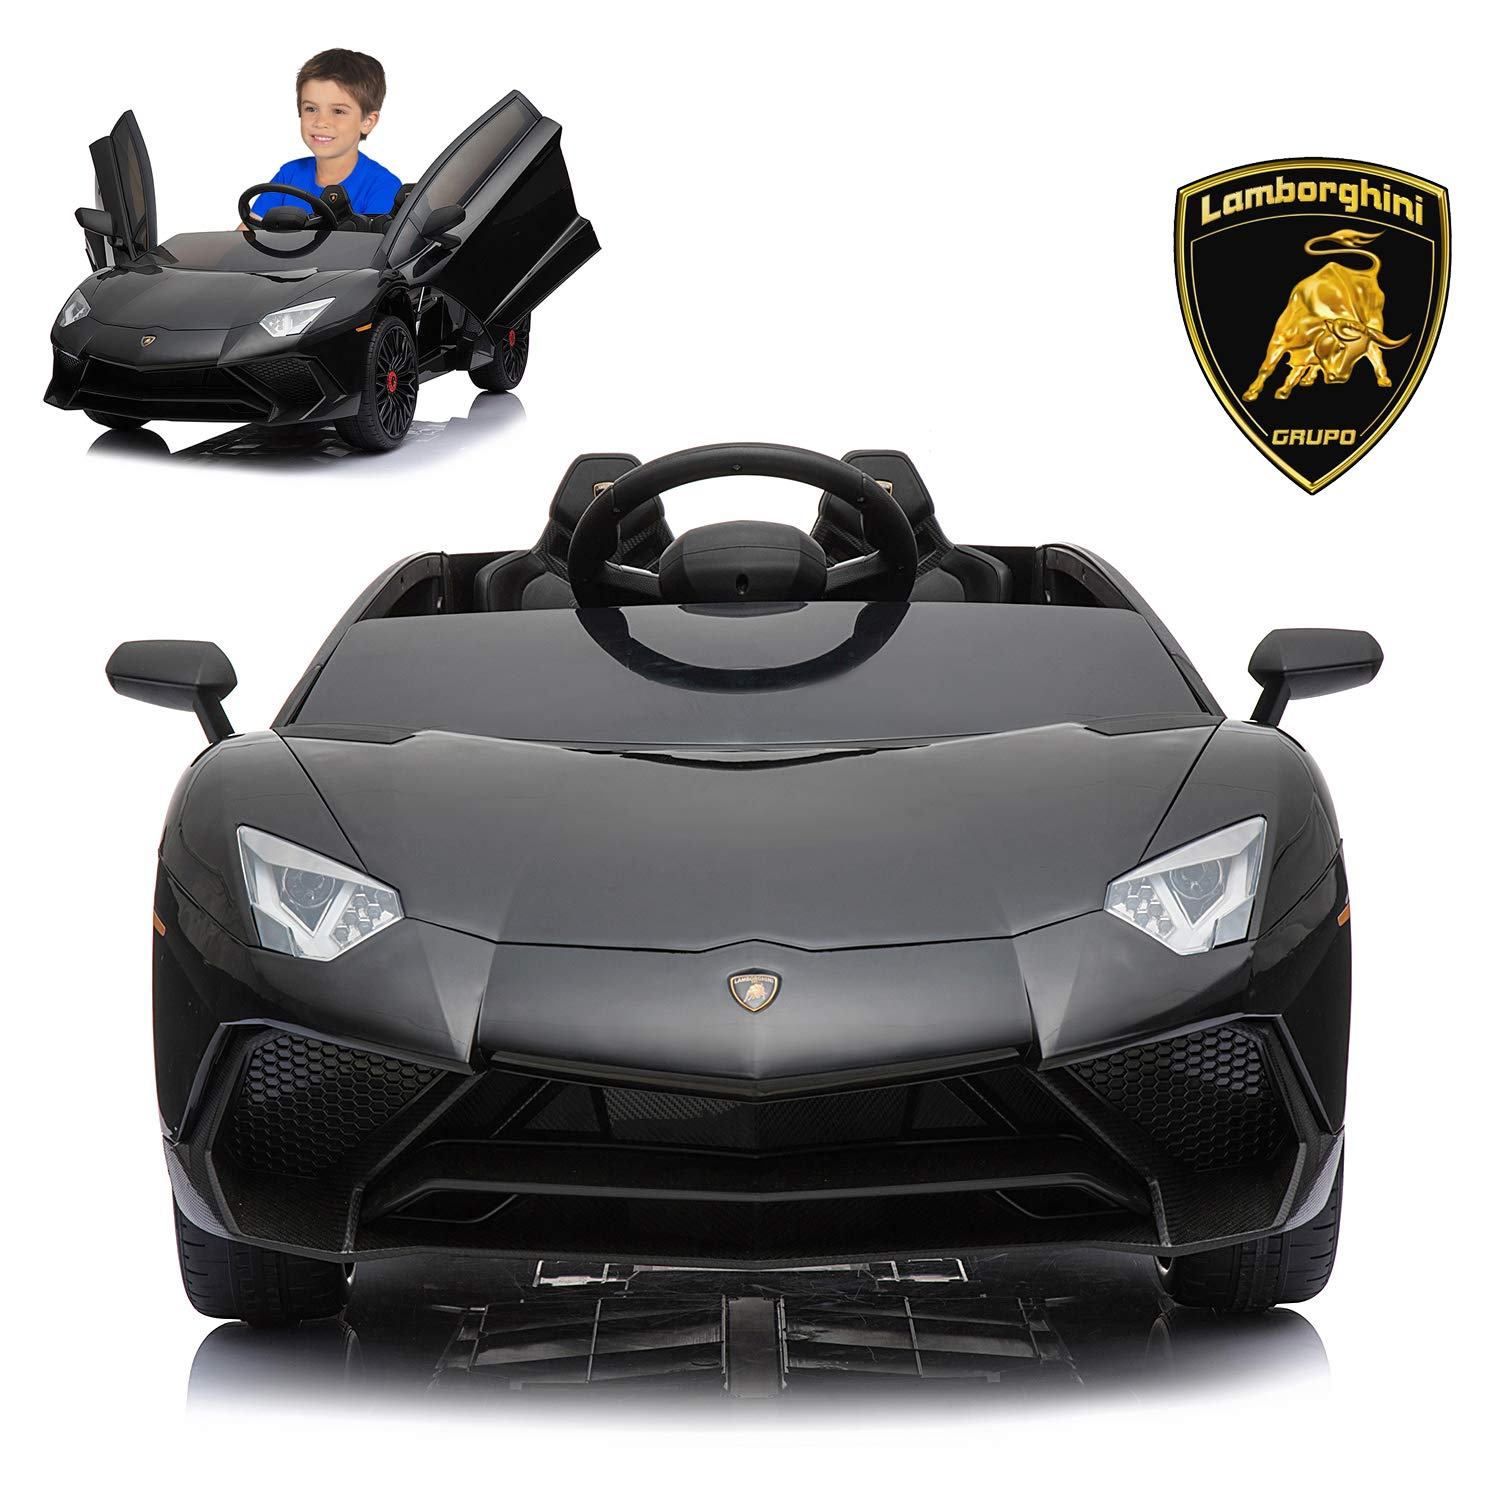 Electric Kids Cars >> Amazon Com Lamborghini Electric Ride On Car With Remote Control For